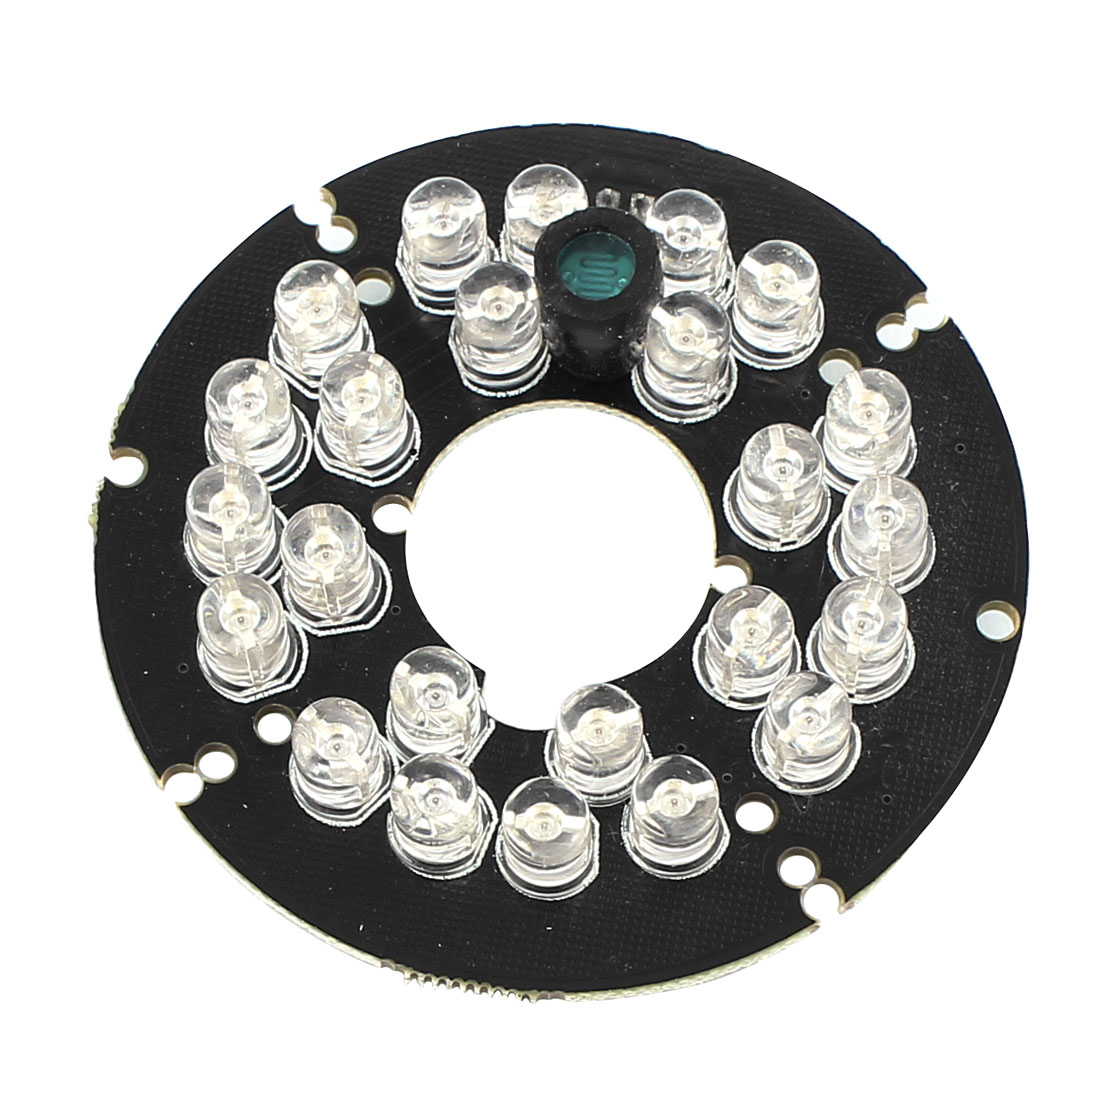 Array 24 Low Power Infrared IR LED Light Board Module For CCTV Camera